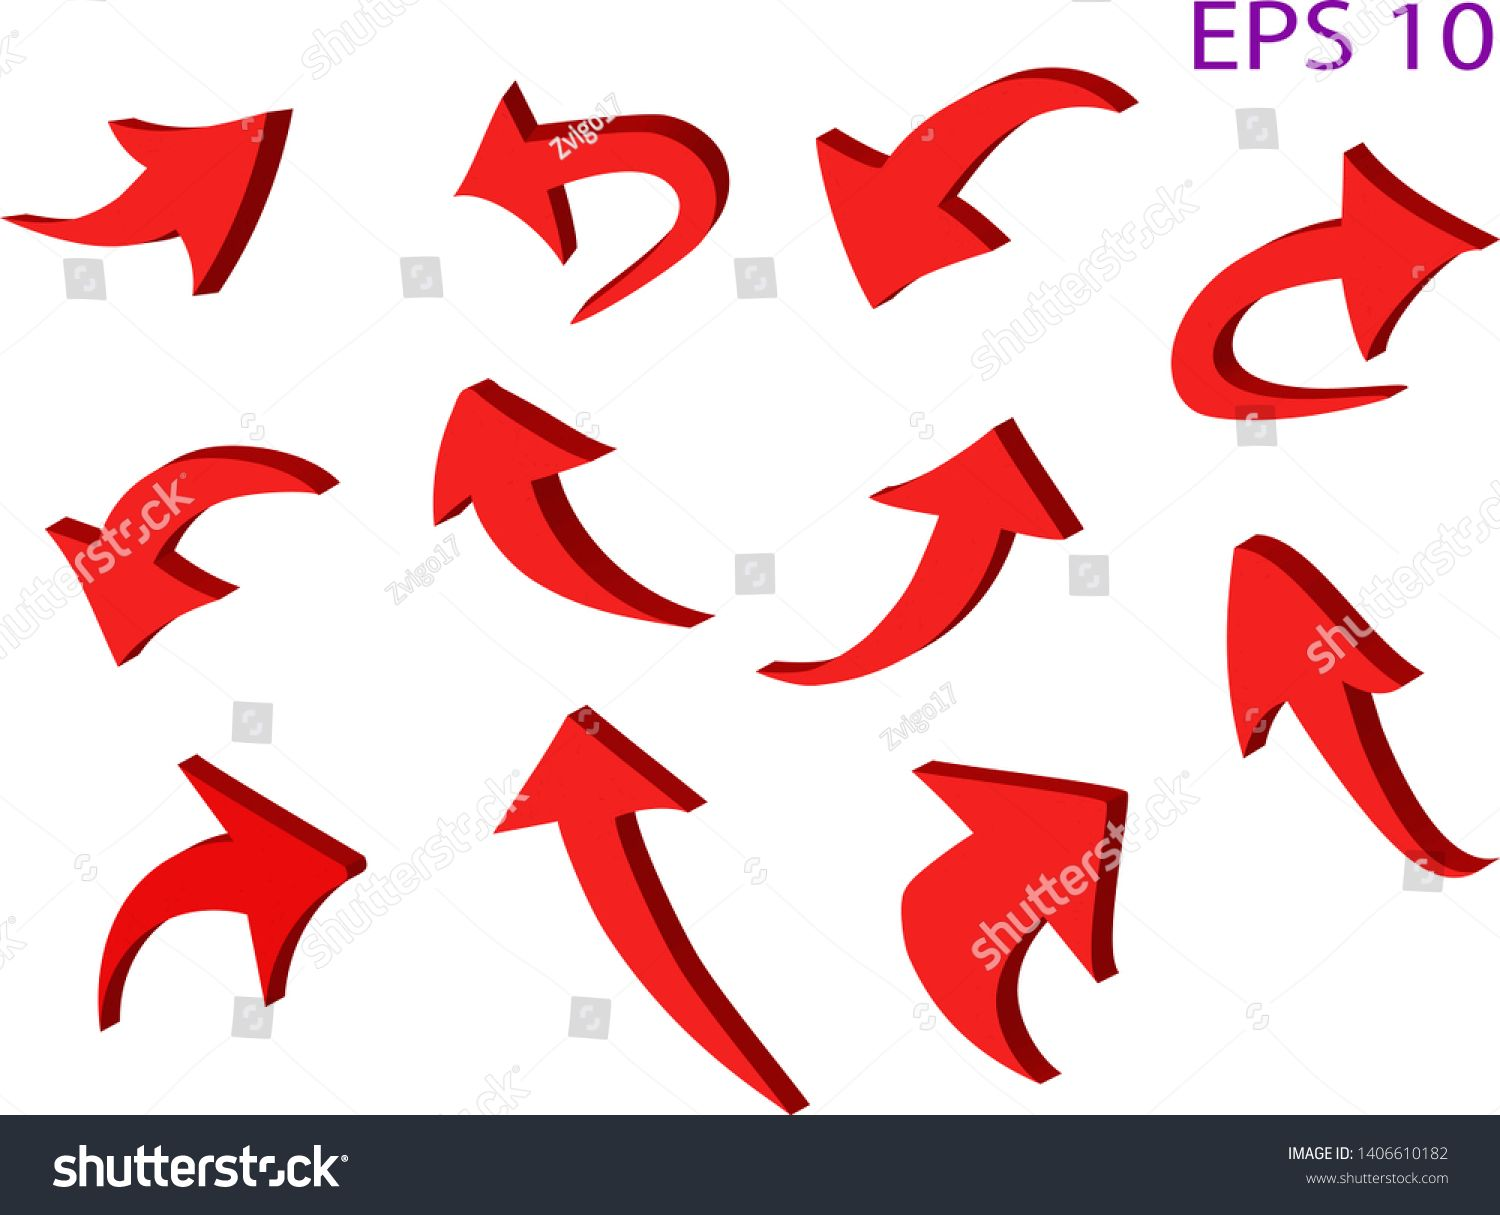 Curved 3 D red arrow icons set. Transparent background